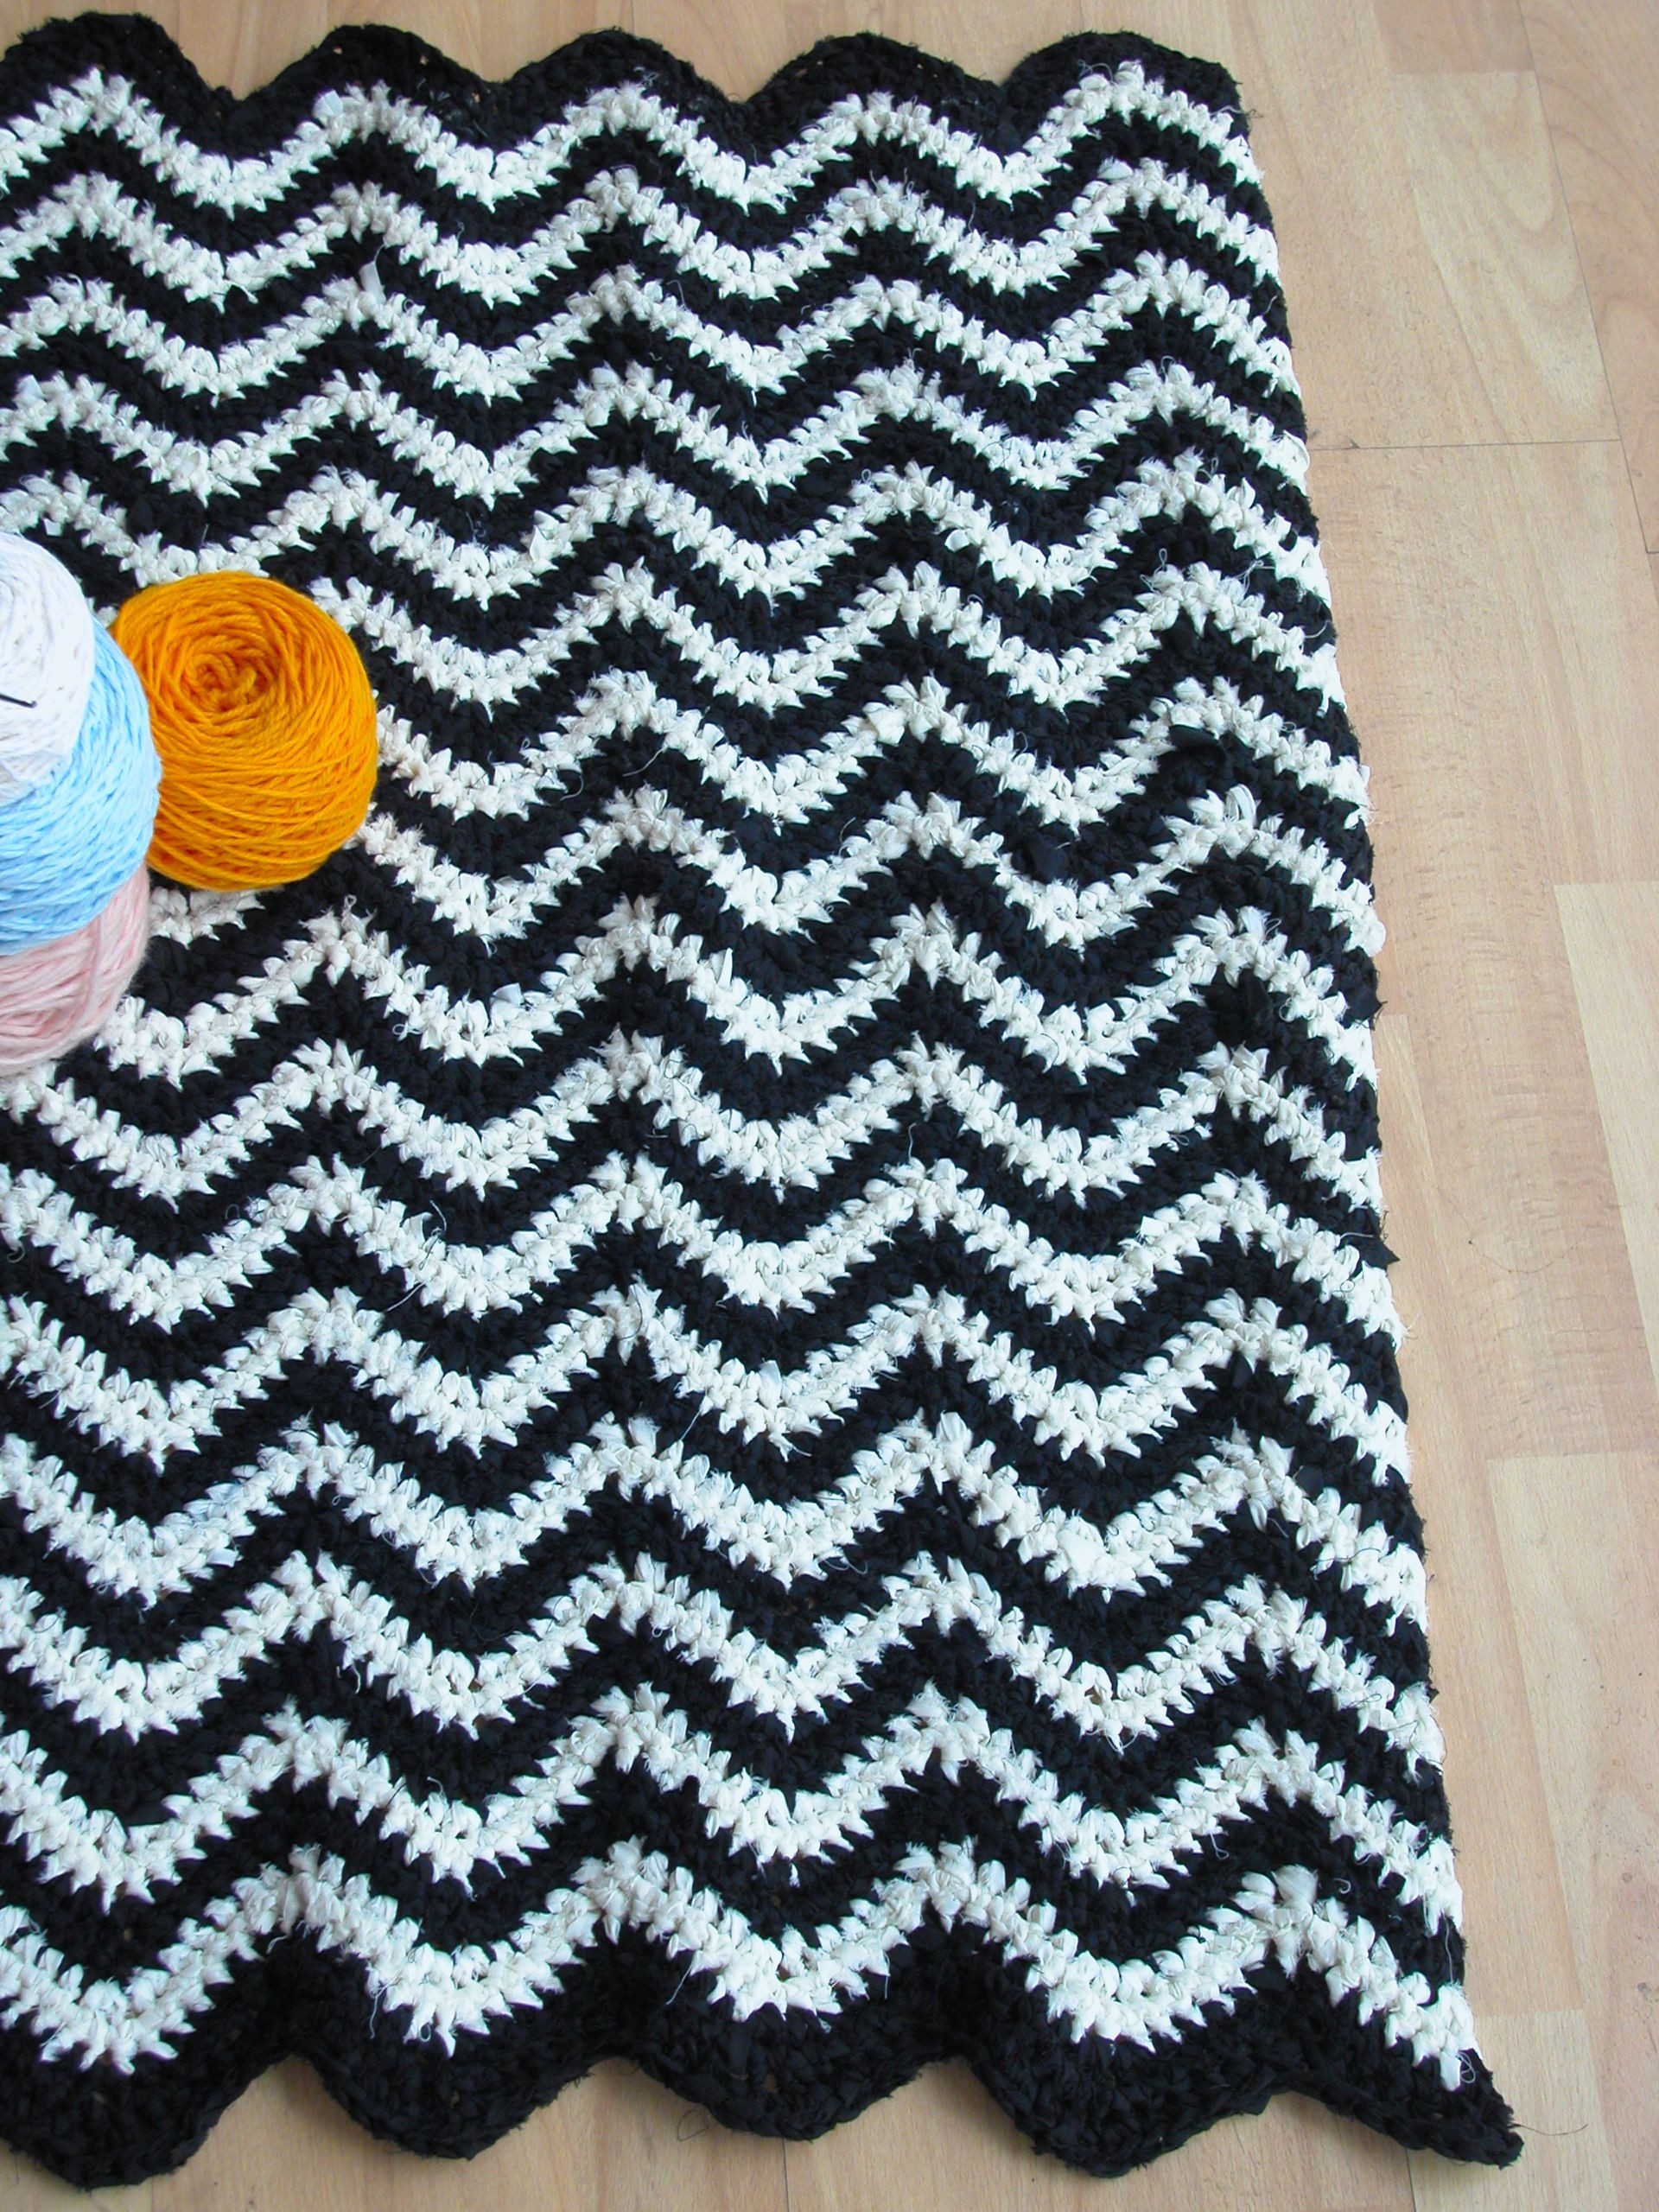 Crochet Rug Patterns Awesome Crochet Rug Pattern Of Amazing 41 Images Crochet Rug Patterns